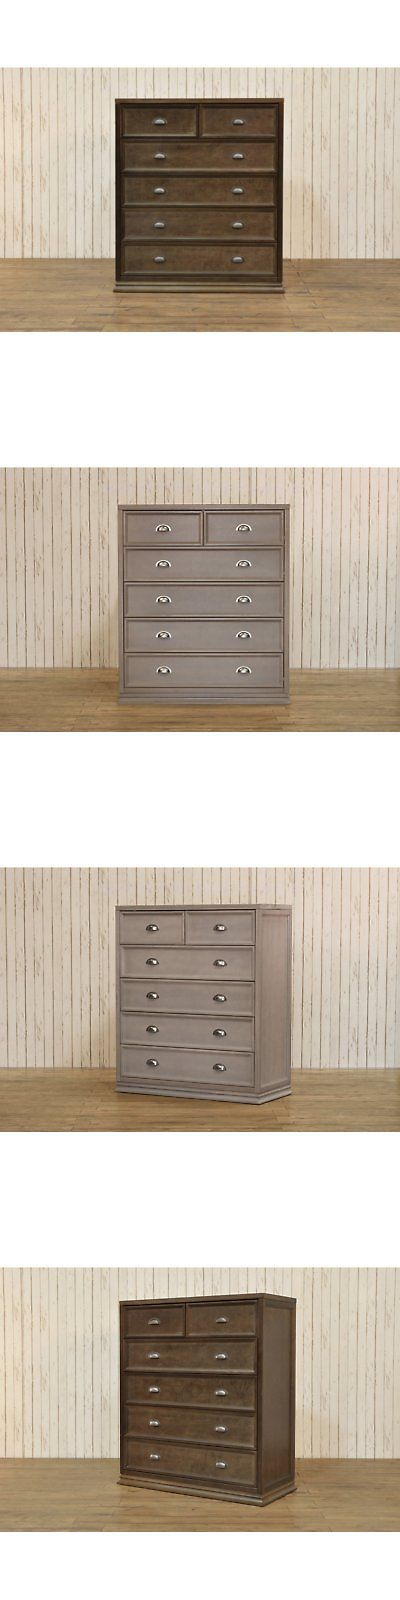 Baby Dressers 134279: Franklin And Ben Mason 6 Drawer Tall Dresser -> BUY IT NOW ONLY: $729 on eBay!